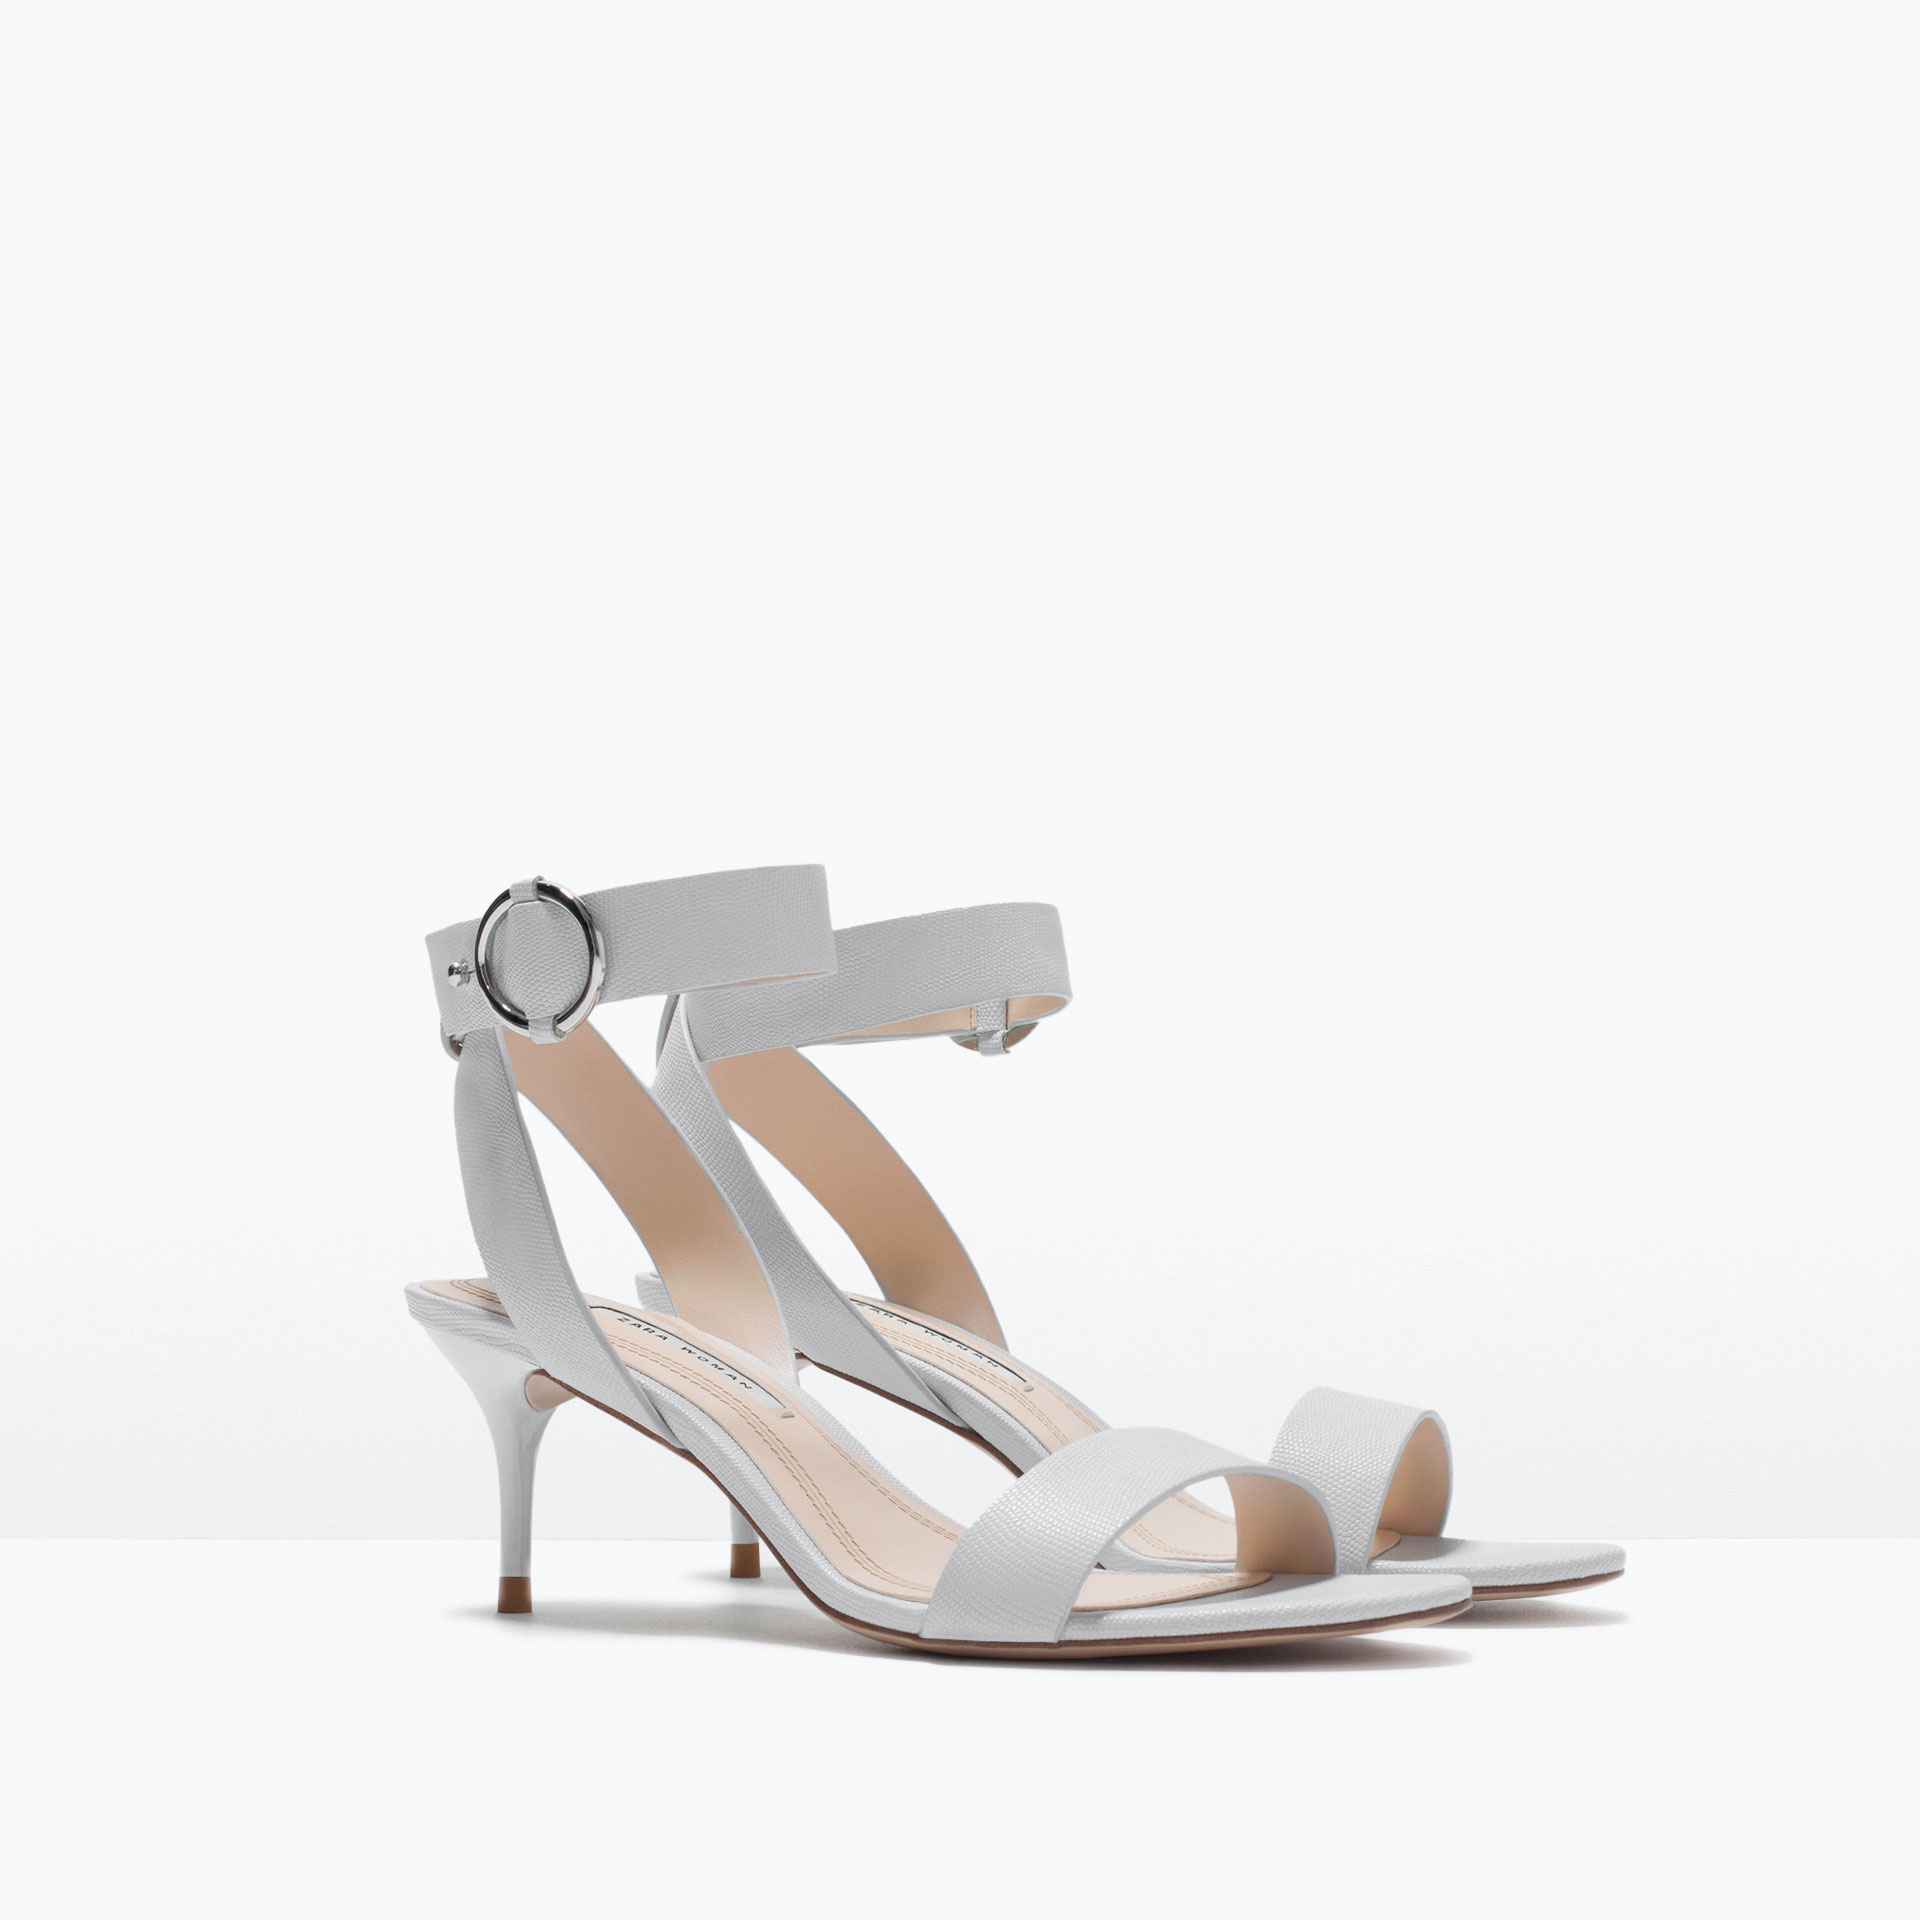 Zara Mid-Heel Sandals With Ankle Strap Mid-Heel Sandals With Ankle